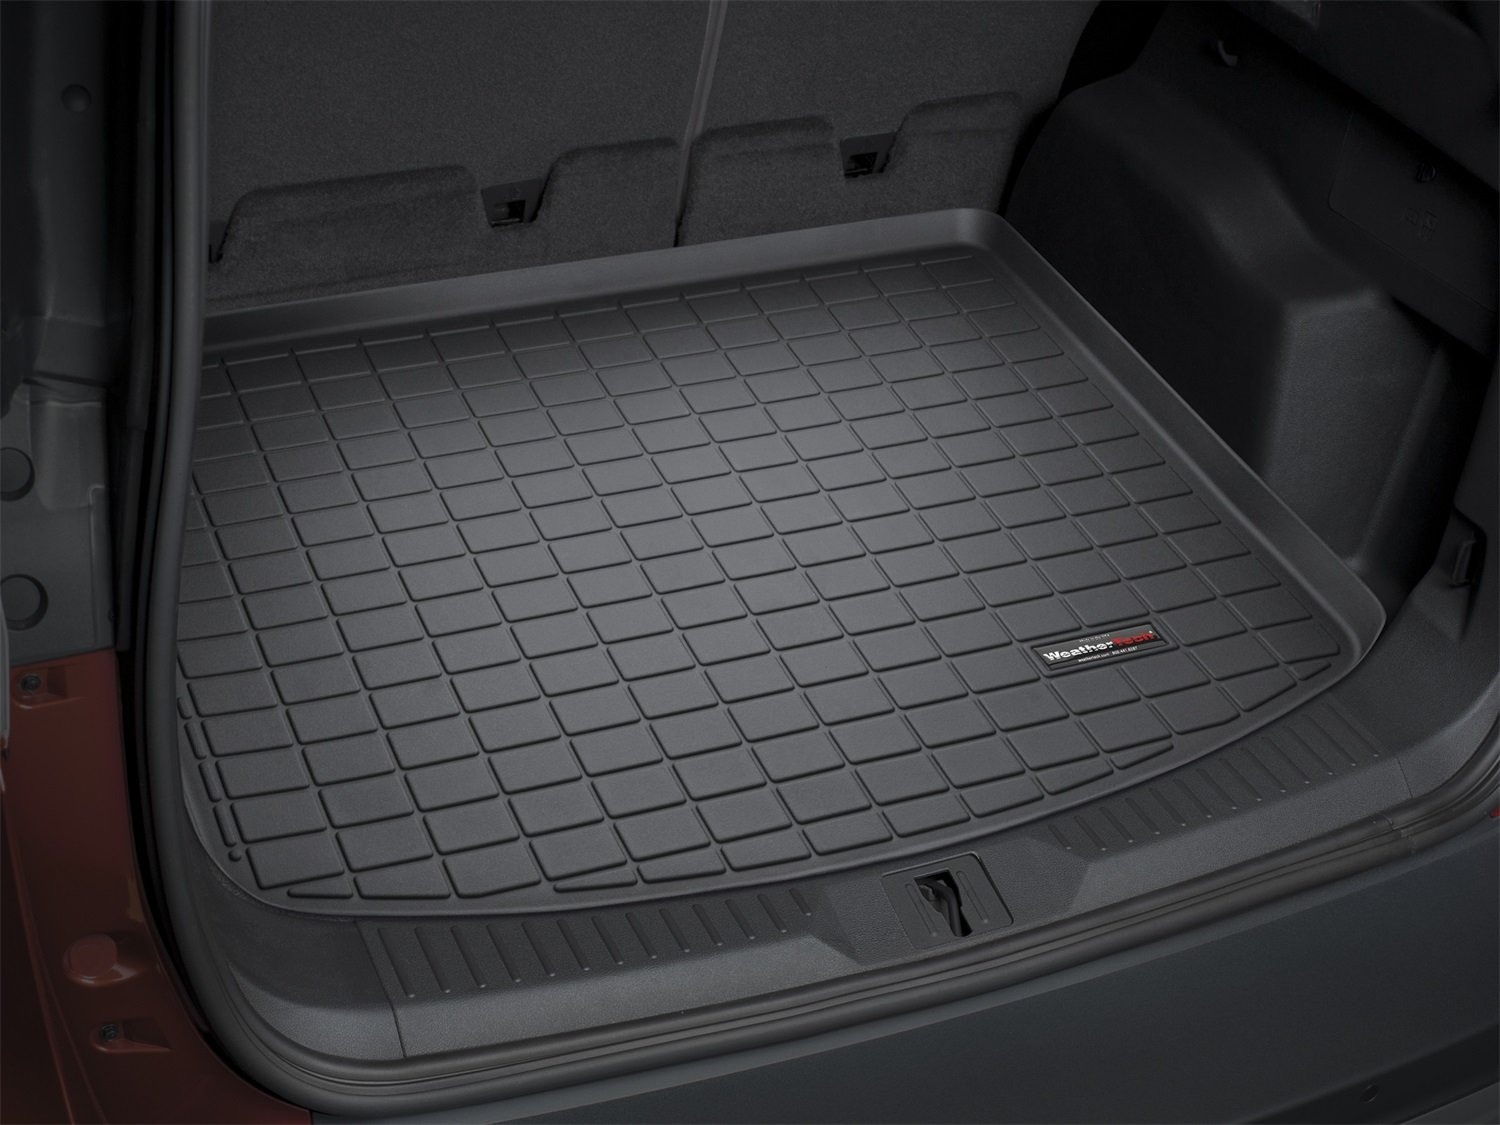 Weathertech floor mats rav4 2012 - Amazon Com Weathertech Custom Fit Cargo Liners For Toyota Rav4 4 Door Black Automotive